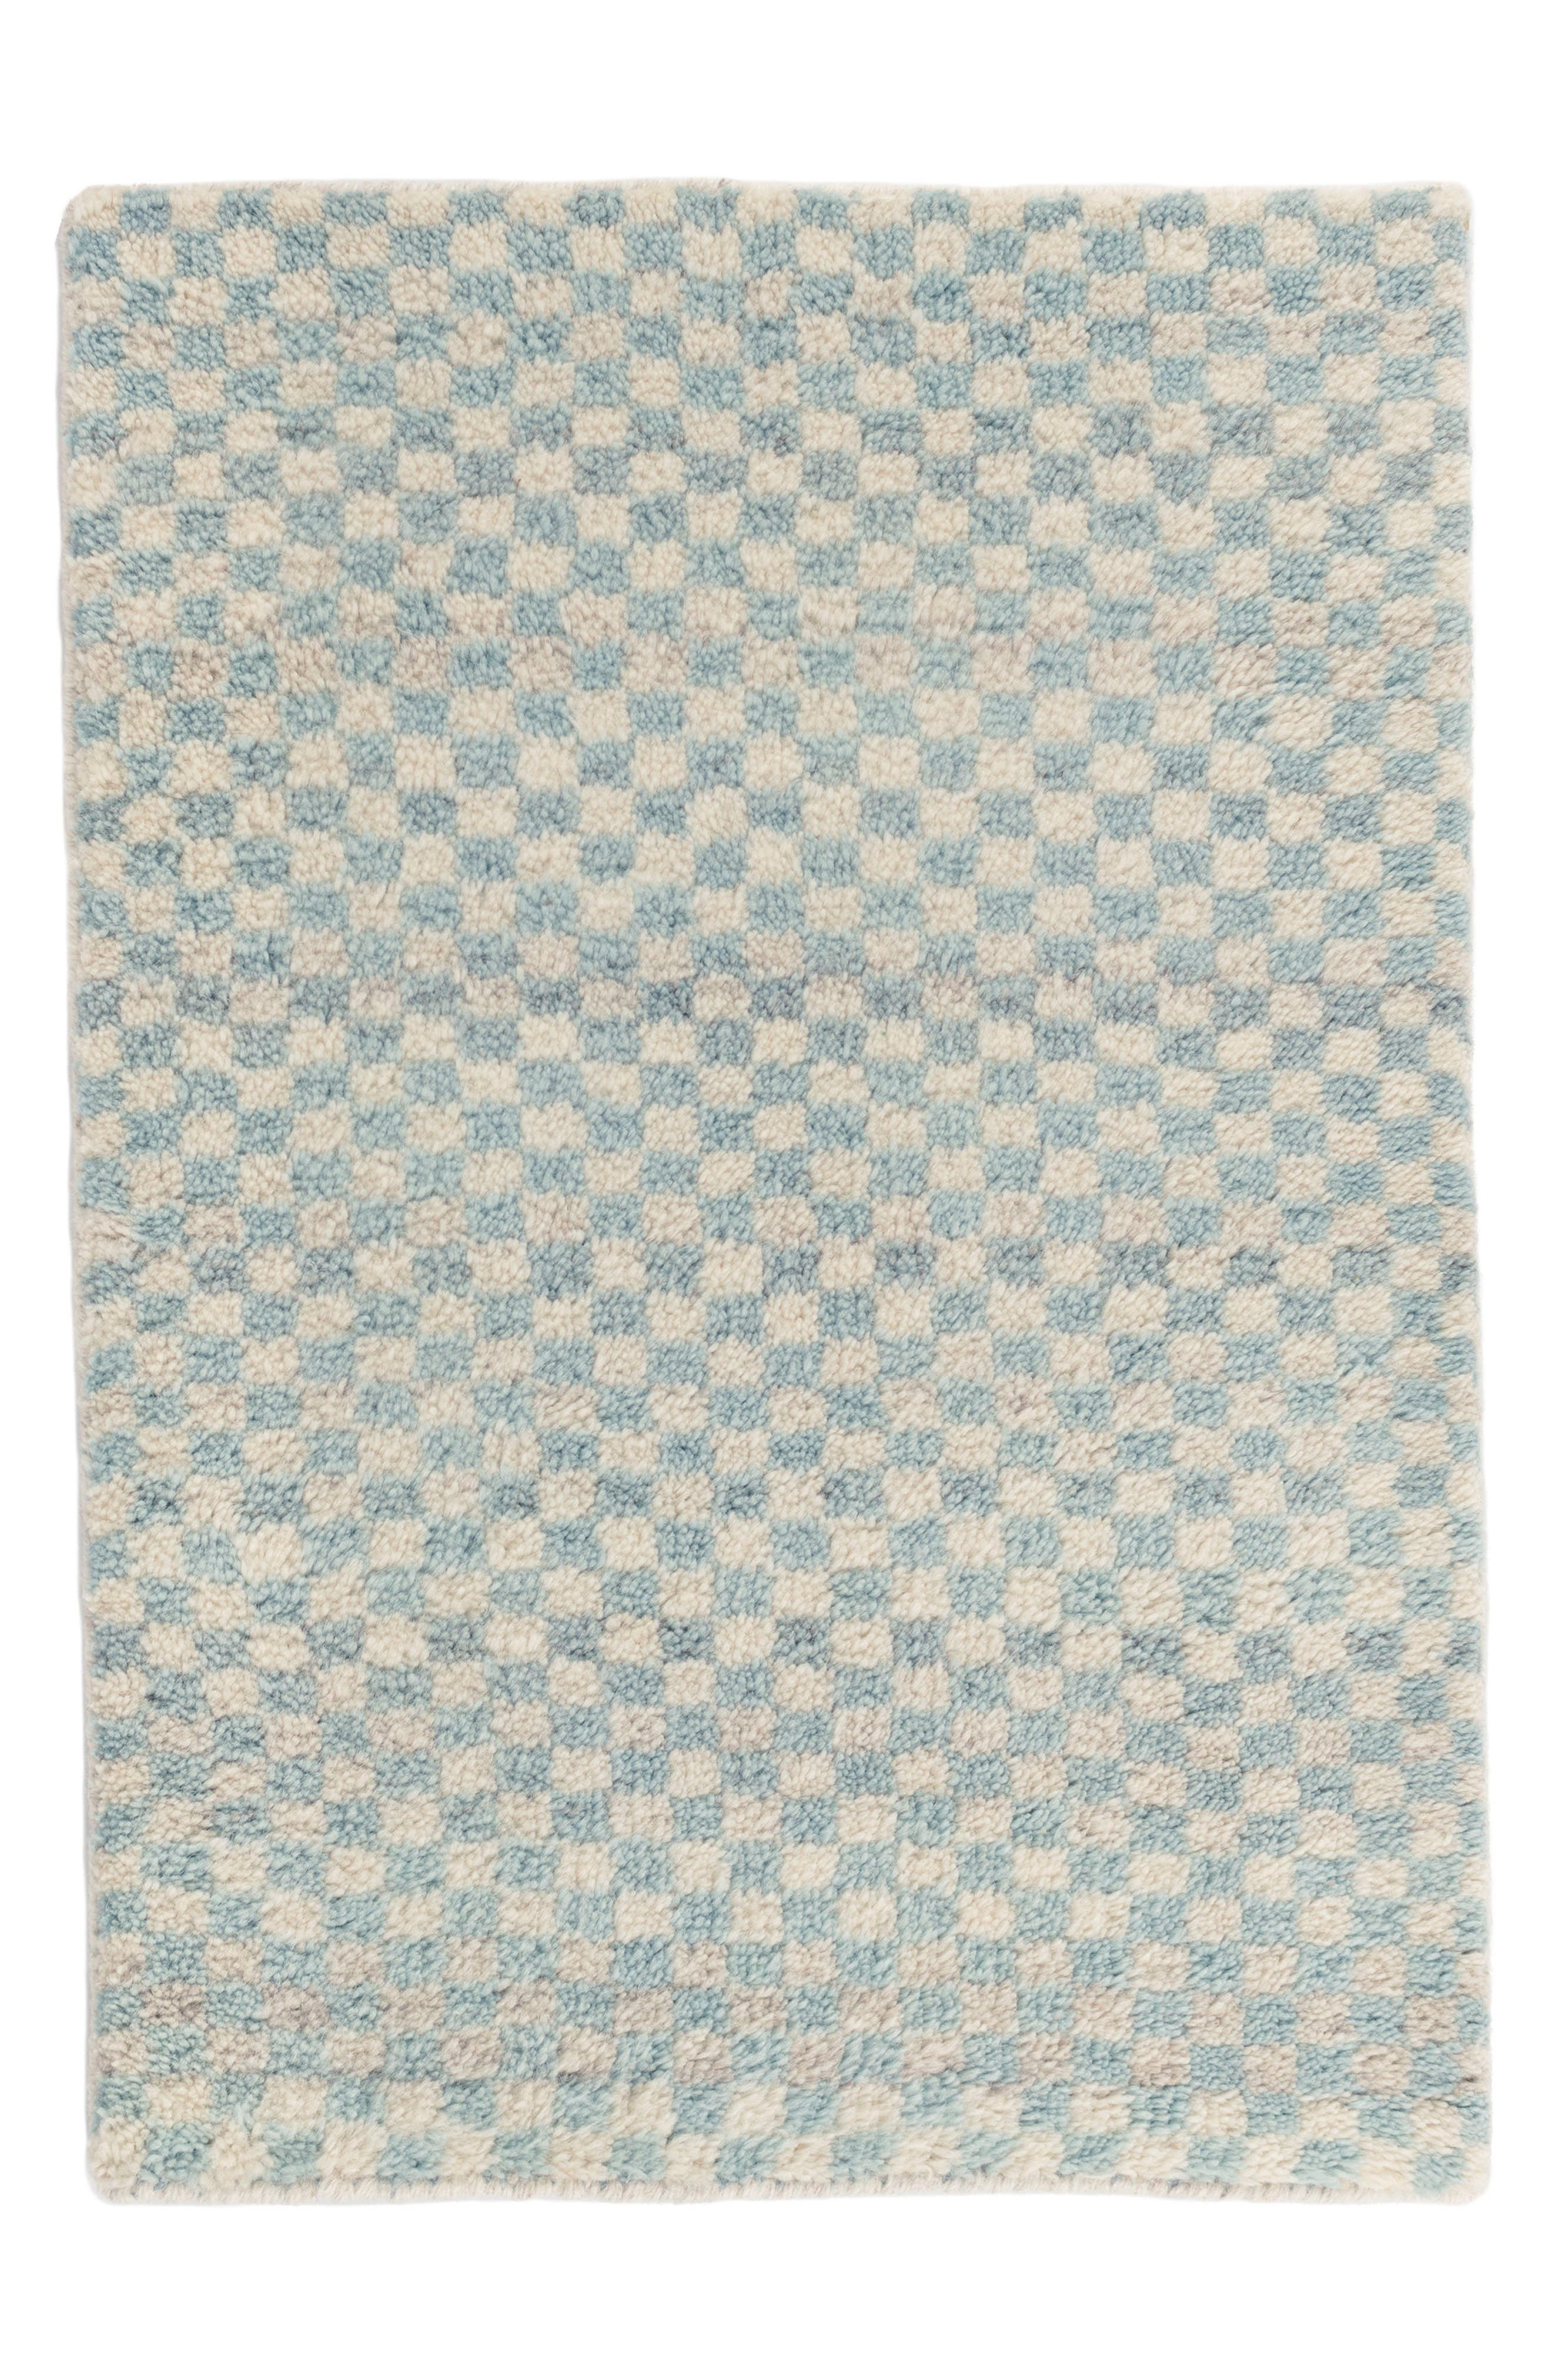 Citra Hand Knotted Rug,                         Main,                         color, 400